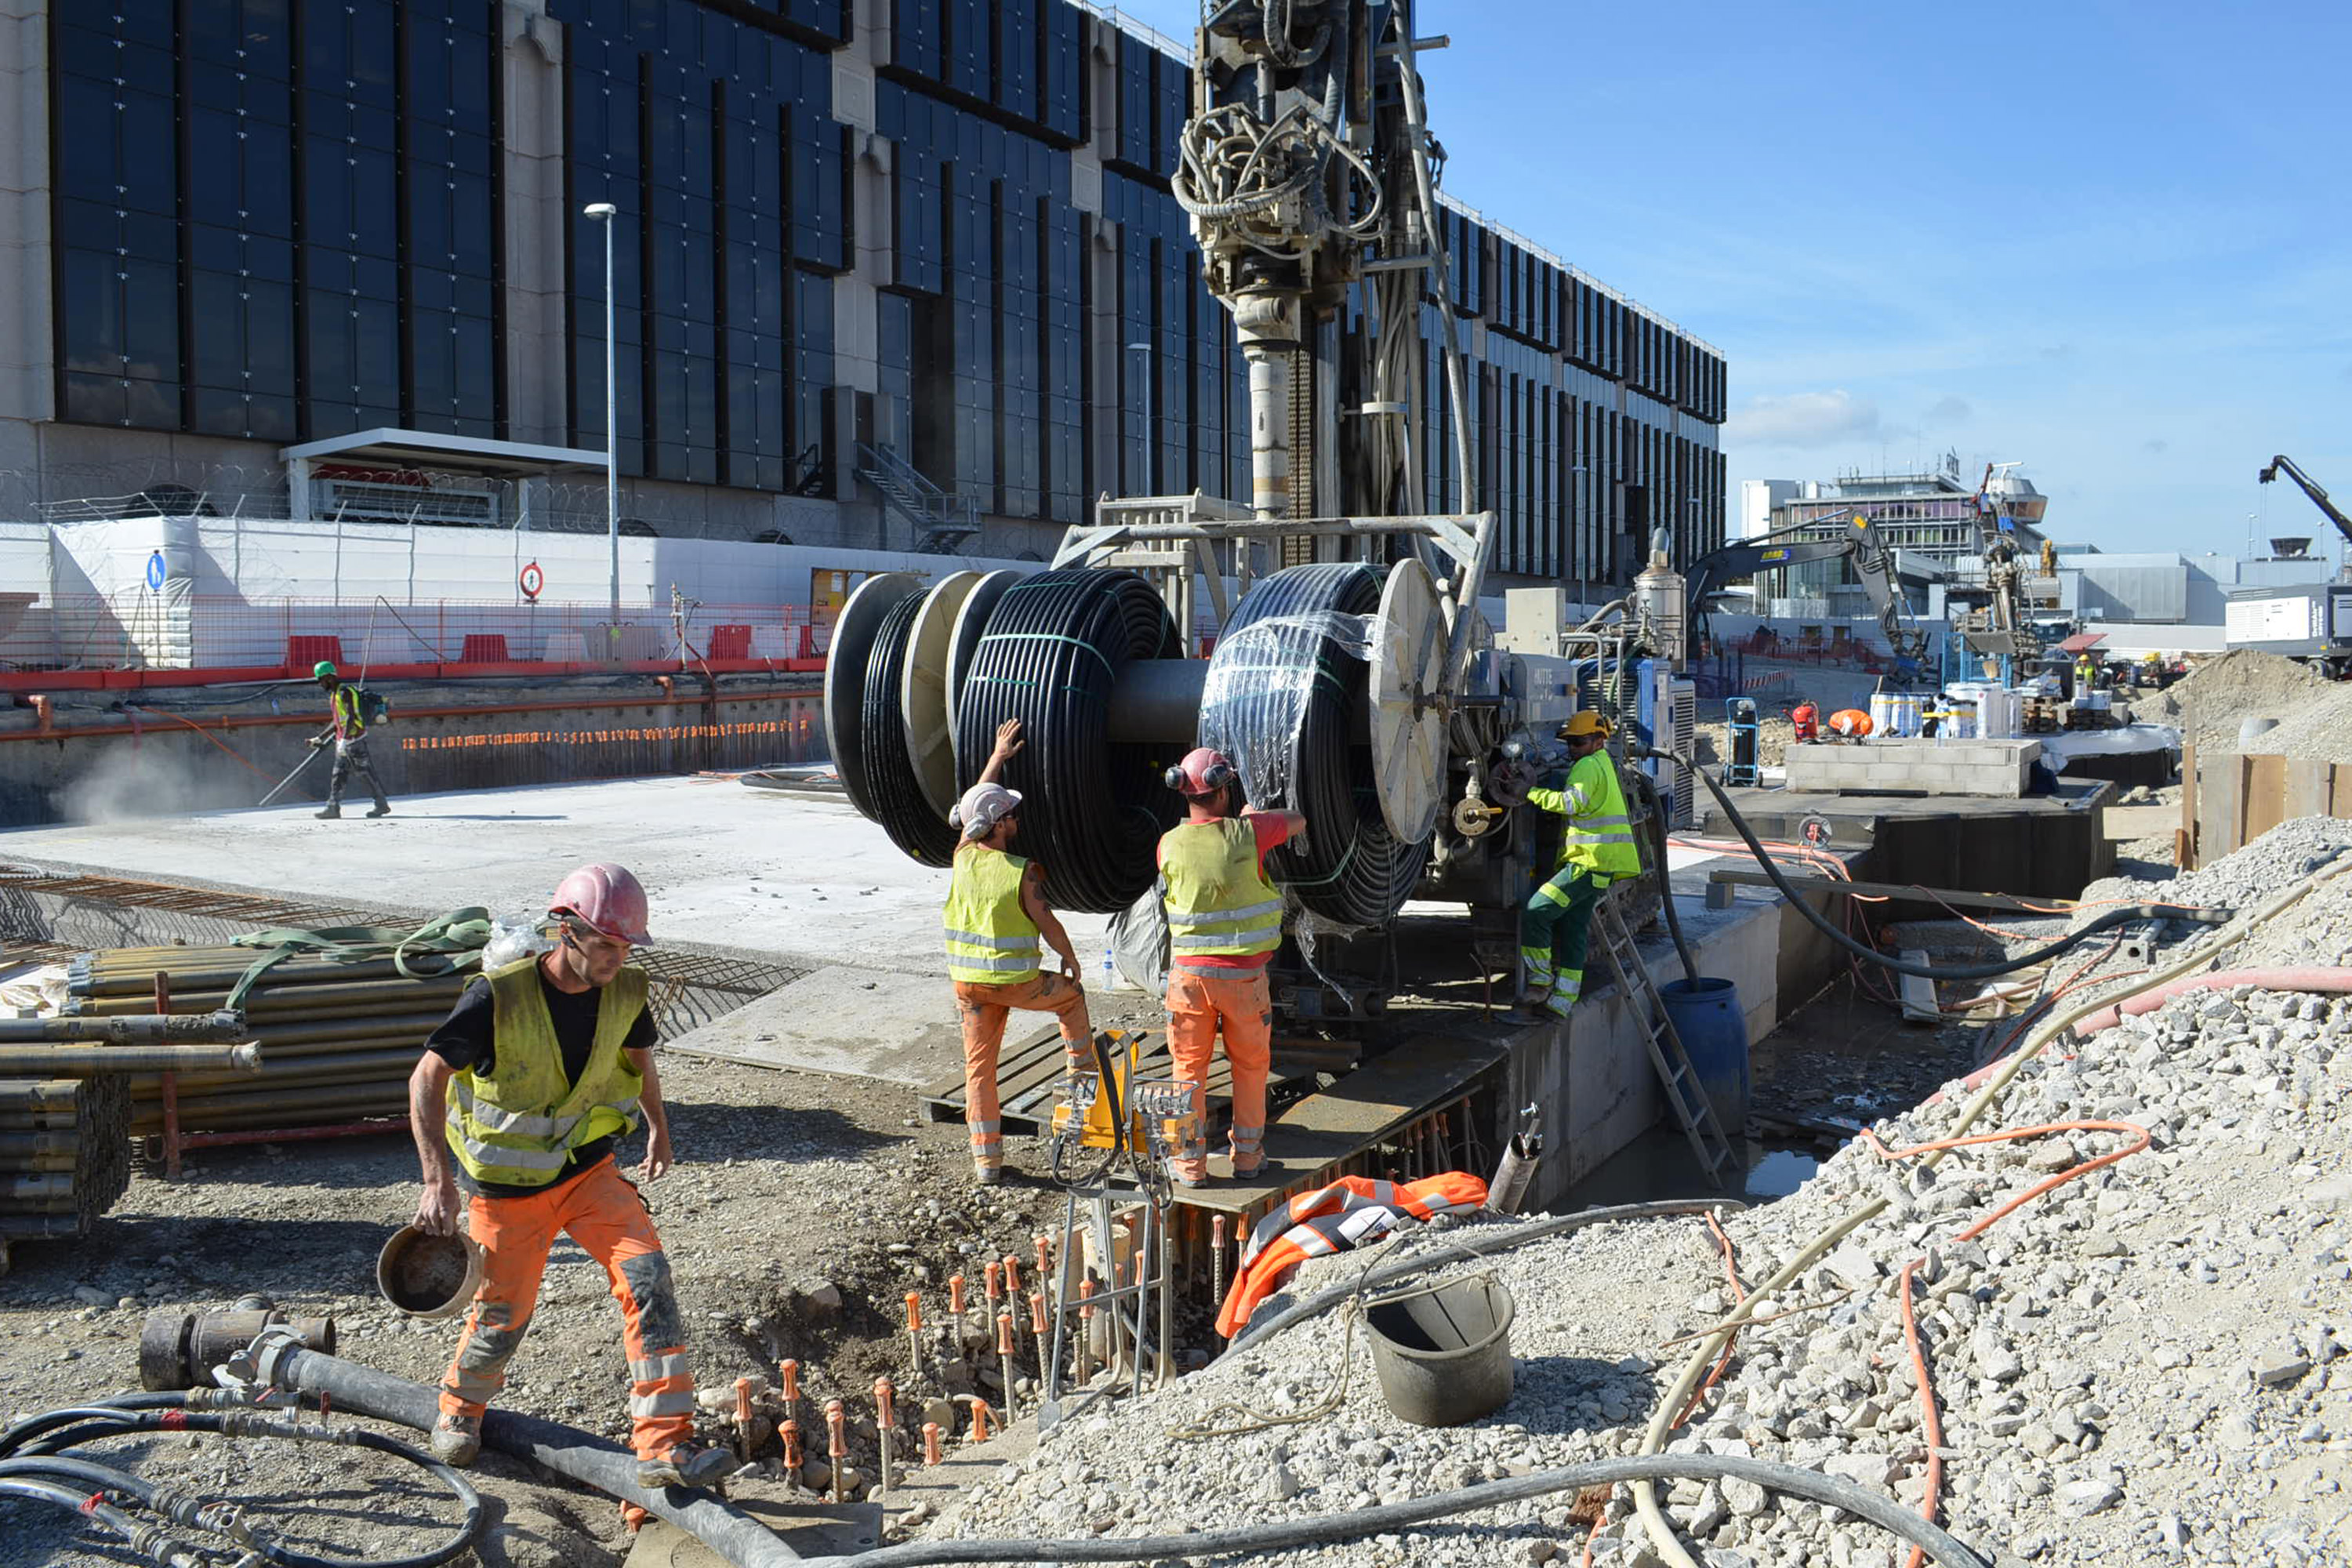 Airport Geneva: taking off with powerful geothermal energy